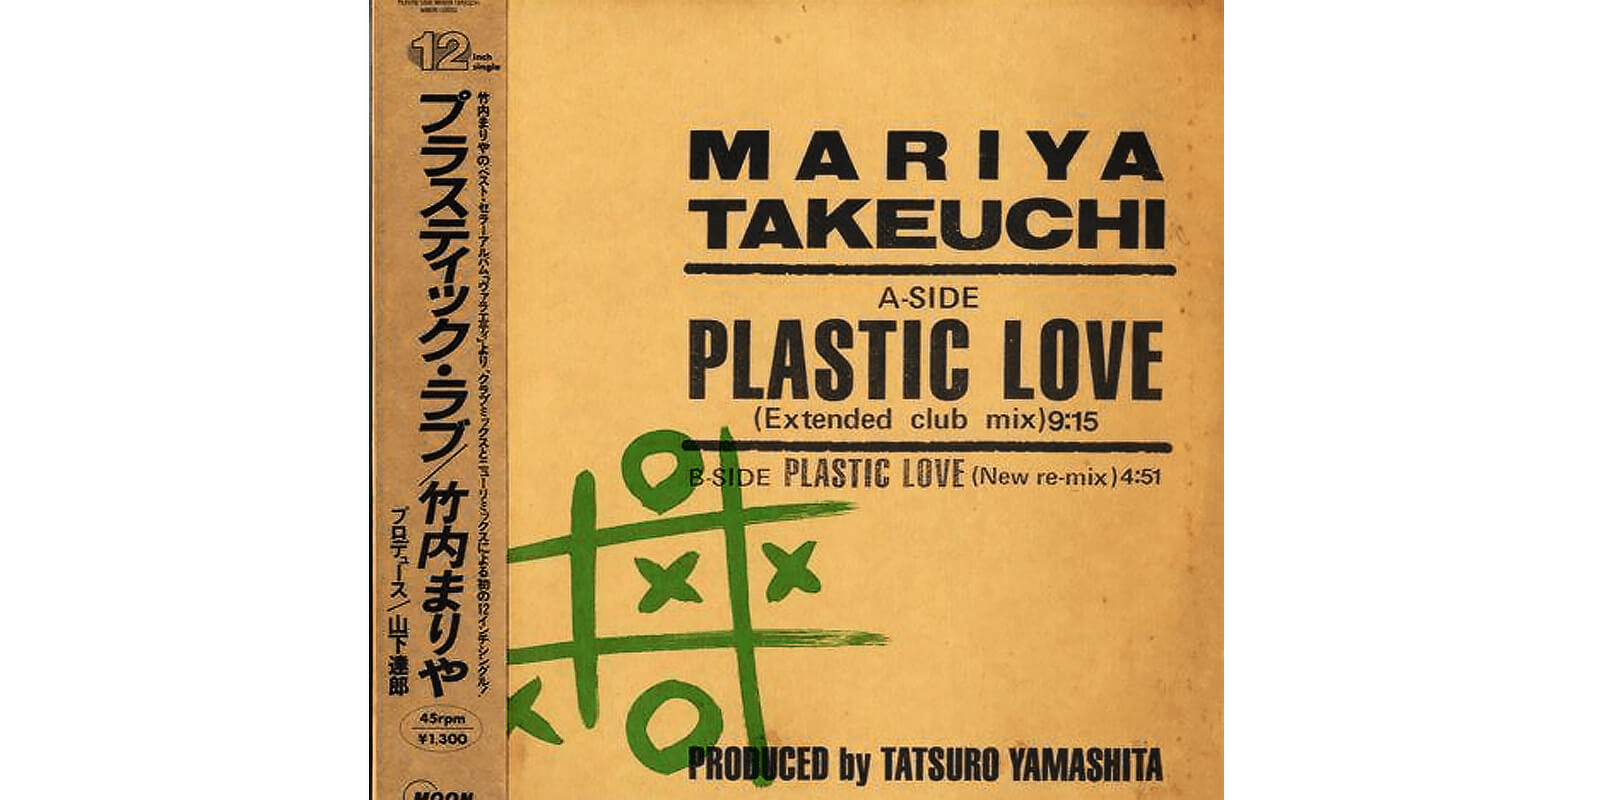 One of the original album covers of Plastic Love.